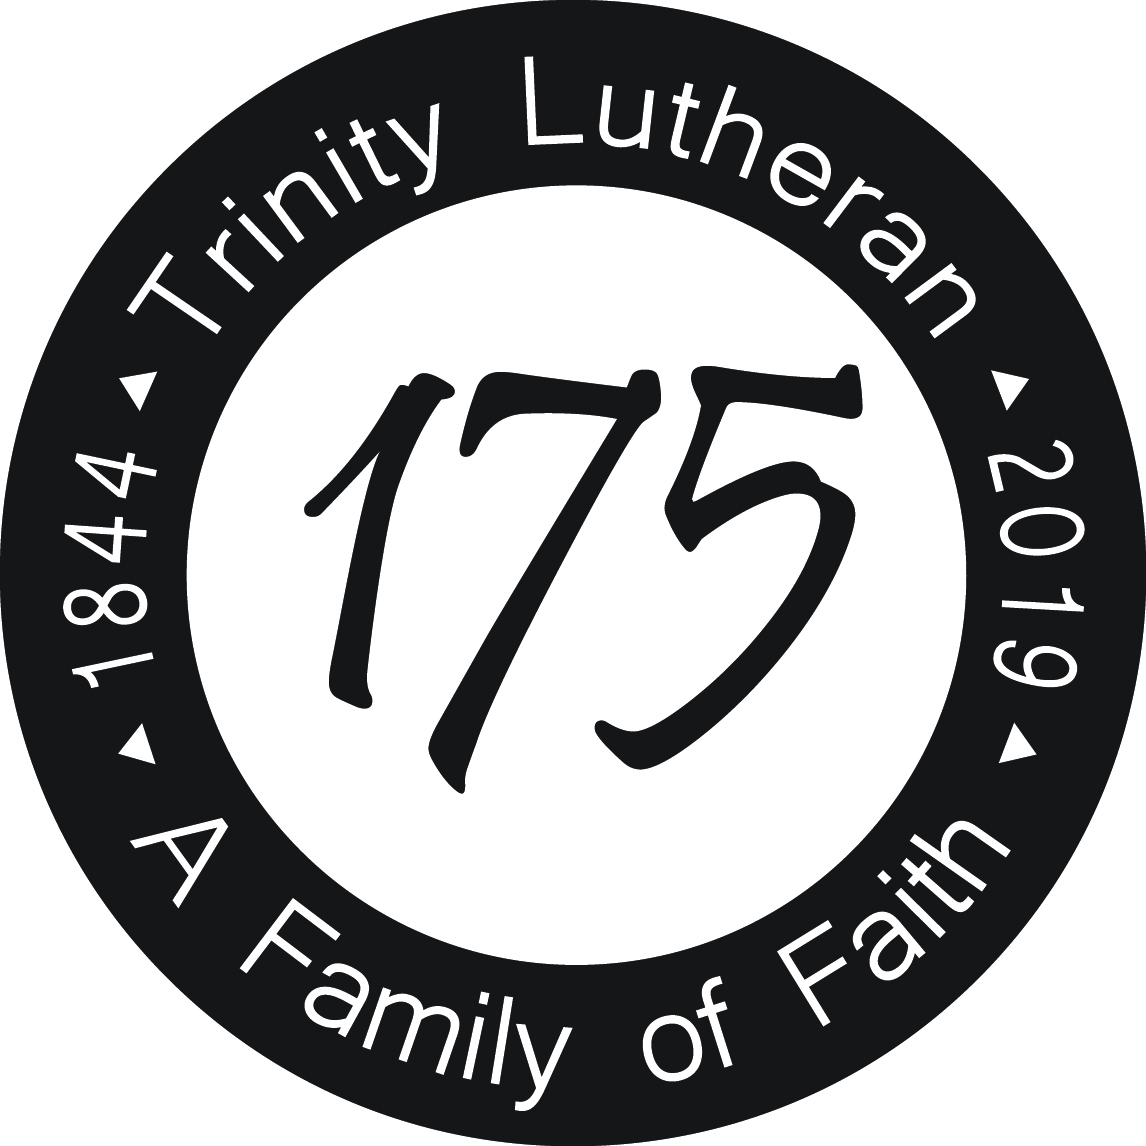 A Great History - Trinity has been a part of the Zanesville community since its founding in 1844. In October of 2019, Trinity will celebrate 175 years as a congregation. We welcome you to learn more about the history of our church and see how God has blessed us in His love.